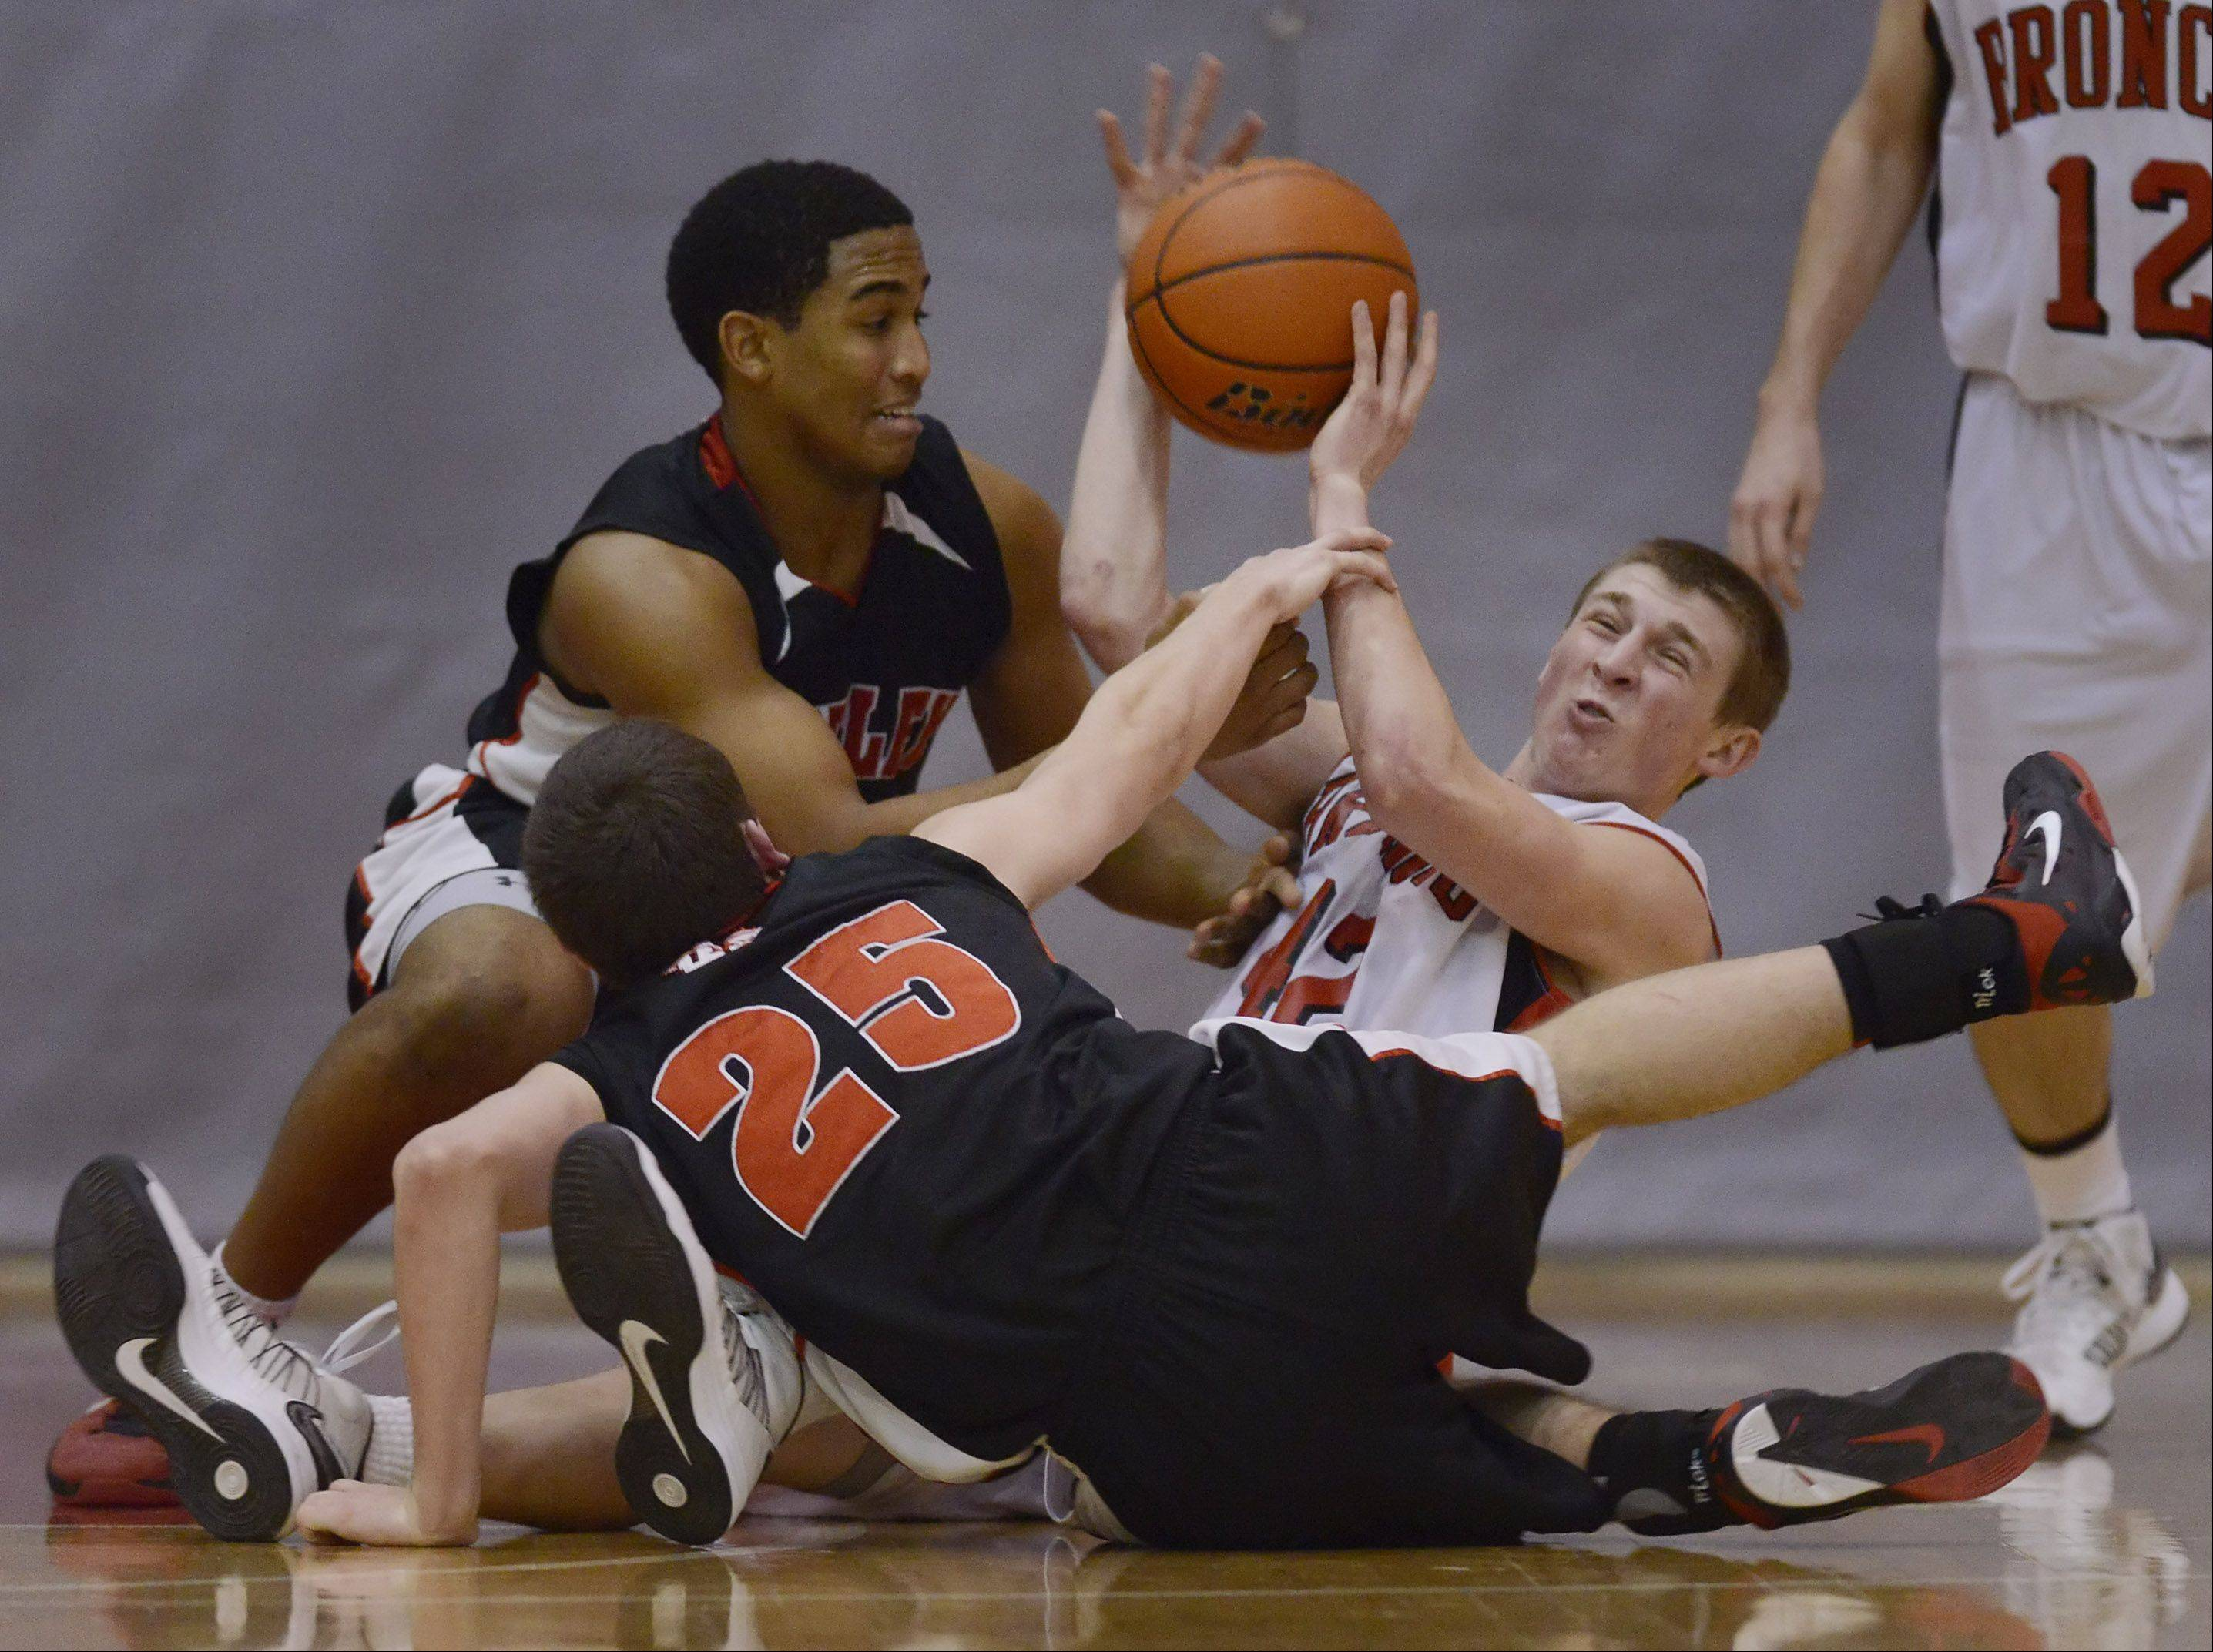 Barrington's Robby Vollman, right, manages to pass the ball to a teammate after diving to the floor with Huntley's Bryce Only, left, and Jason Shields.